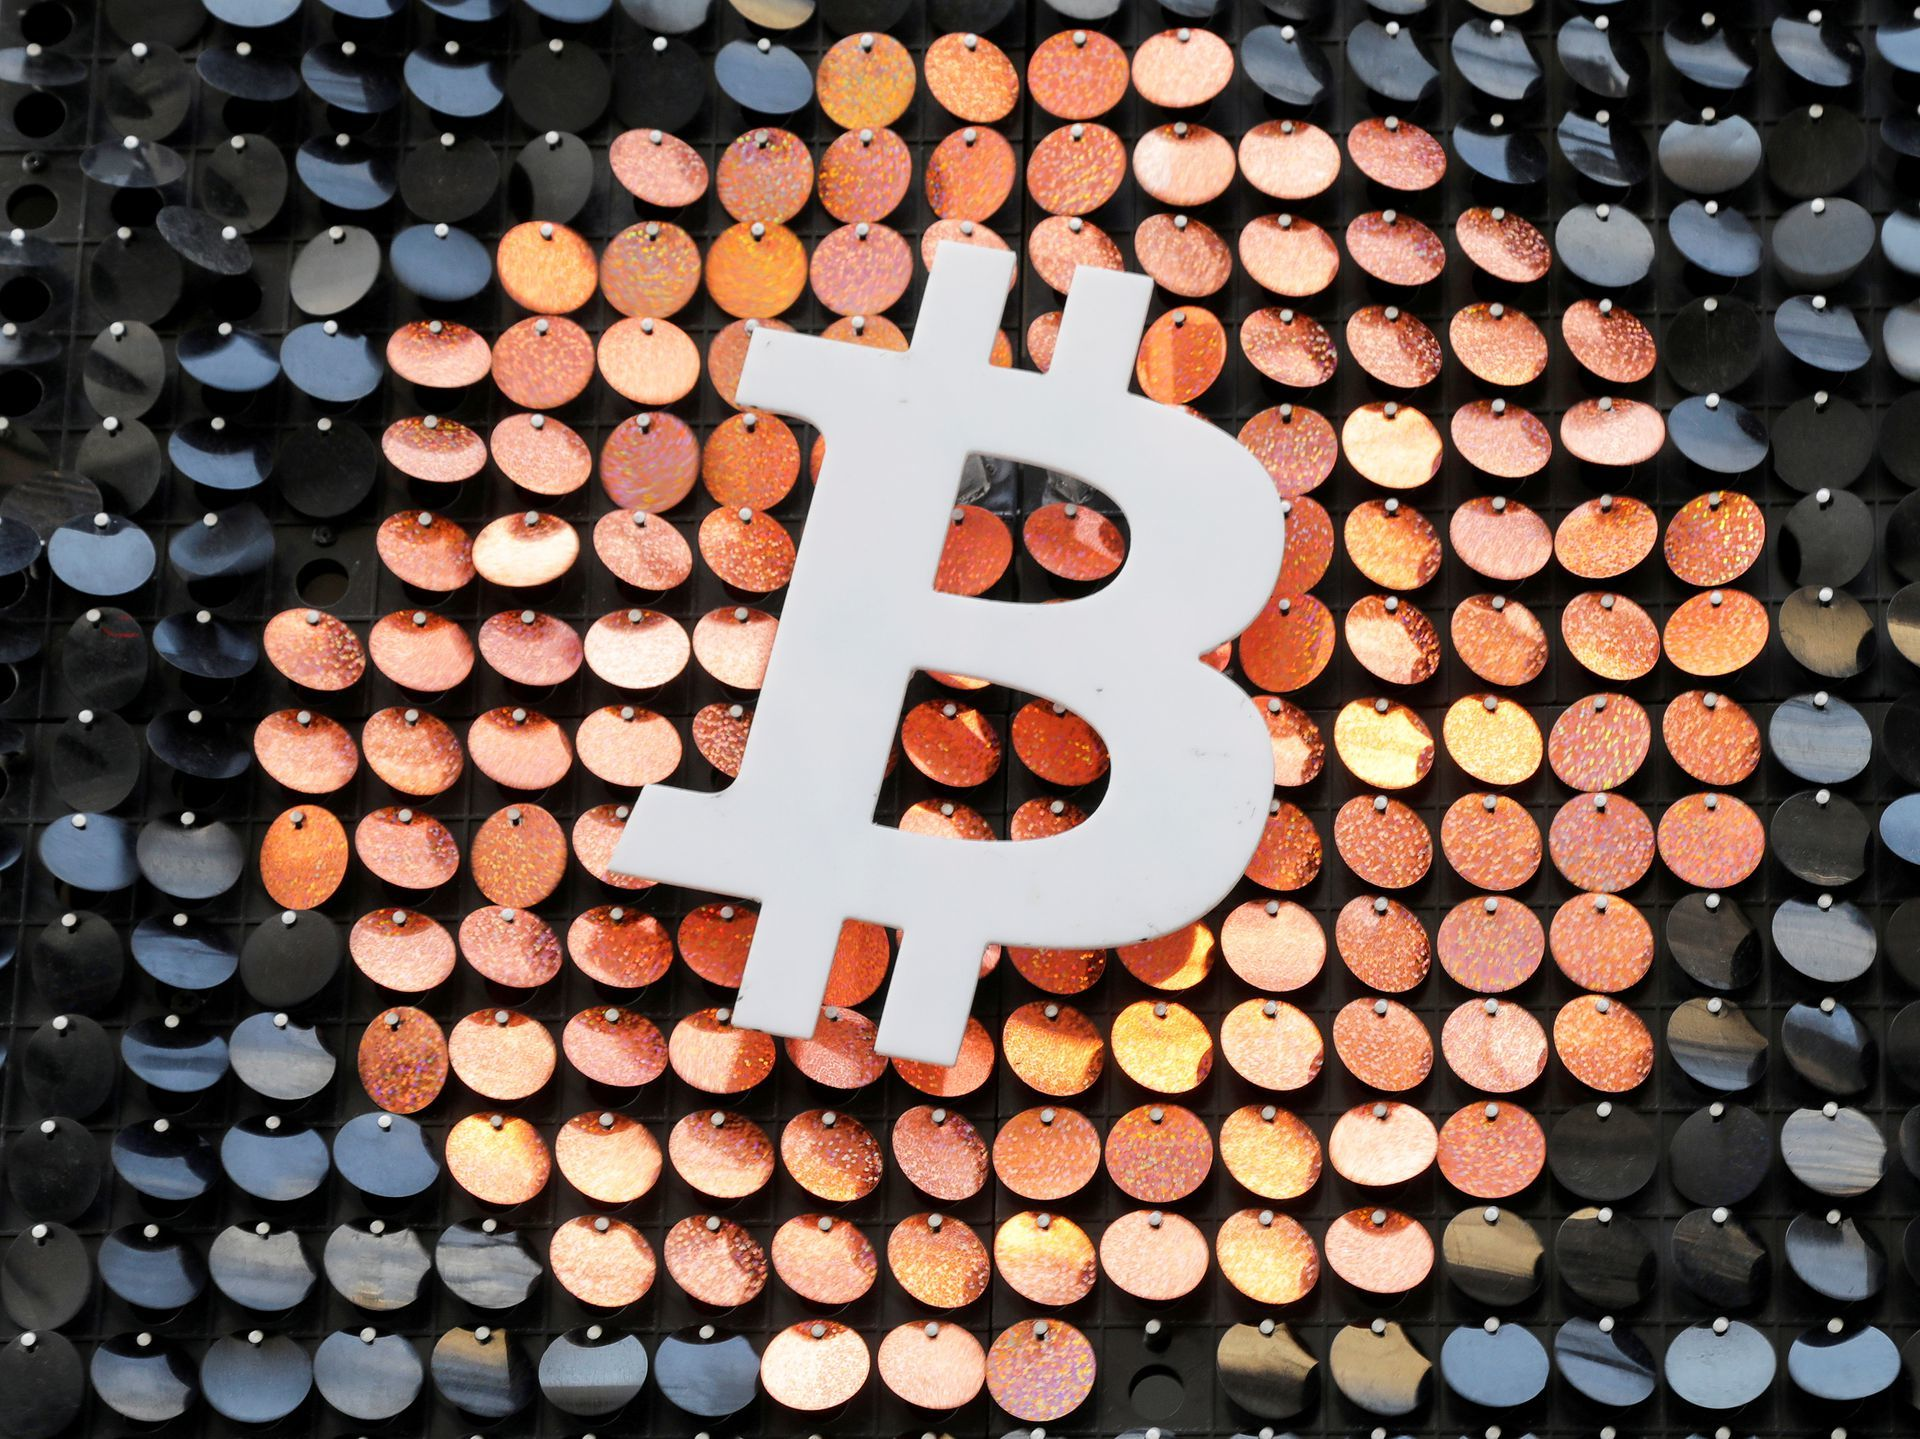 Bitcoin hits 3-month low and then rallies on Musk tweets - World - DAWN.COM